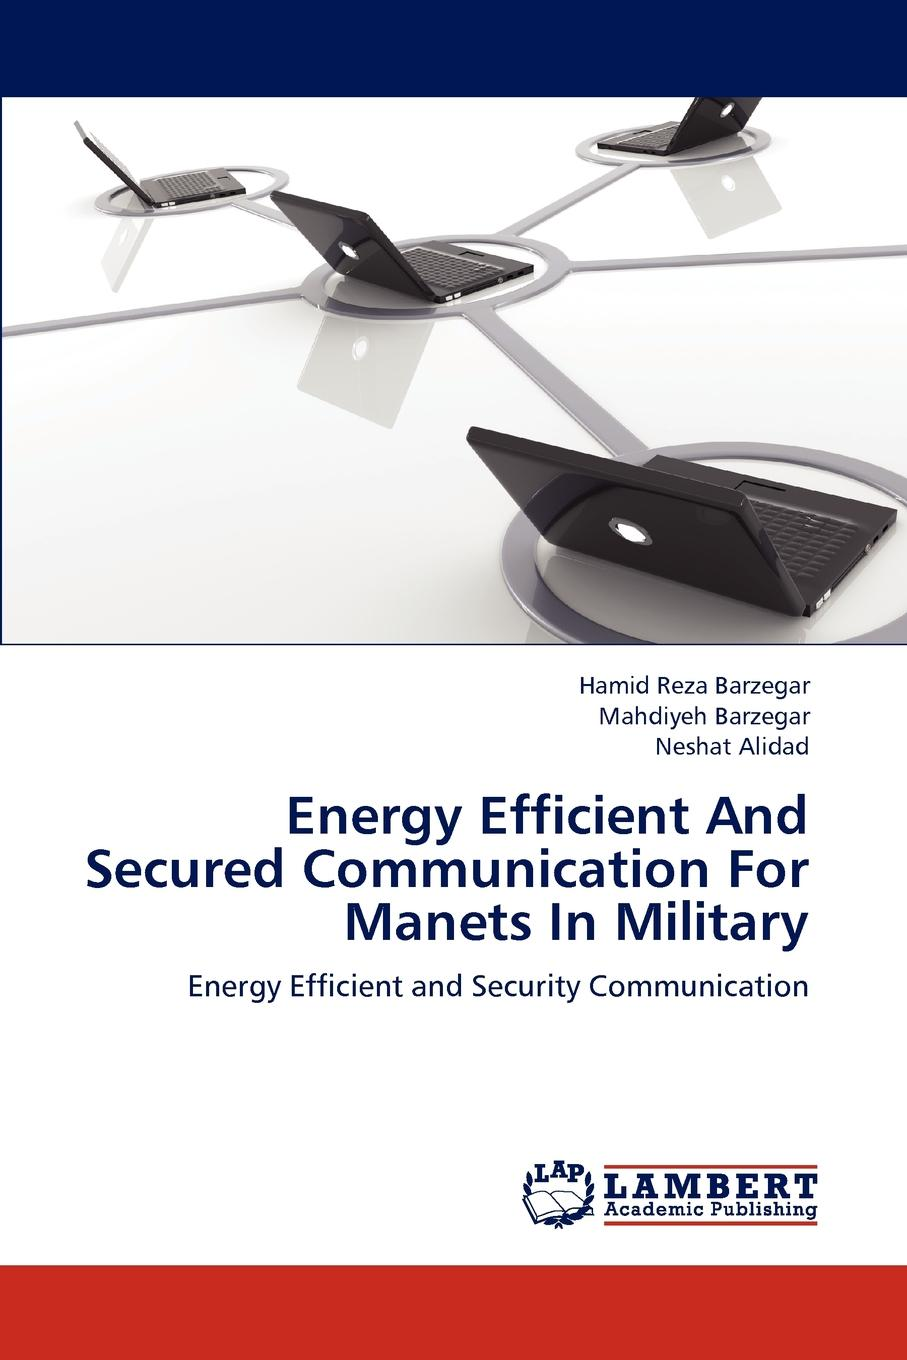 Barzegar Hamid Reza, Alidad Neshat Energy Efficient and Secured Communication for Manets in Military